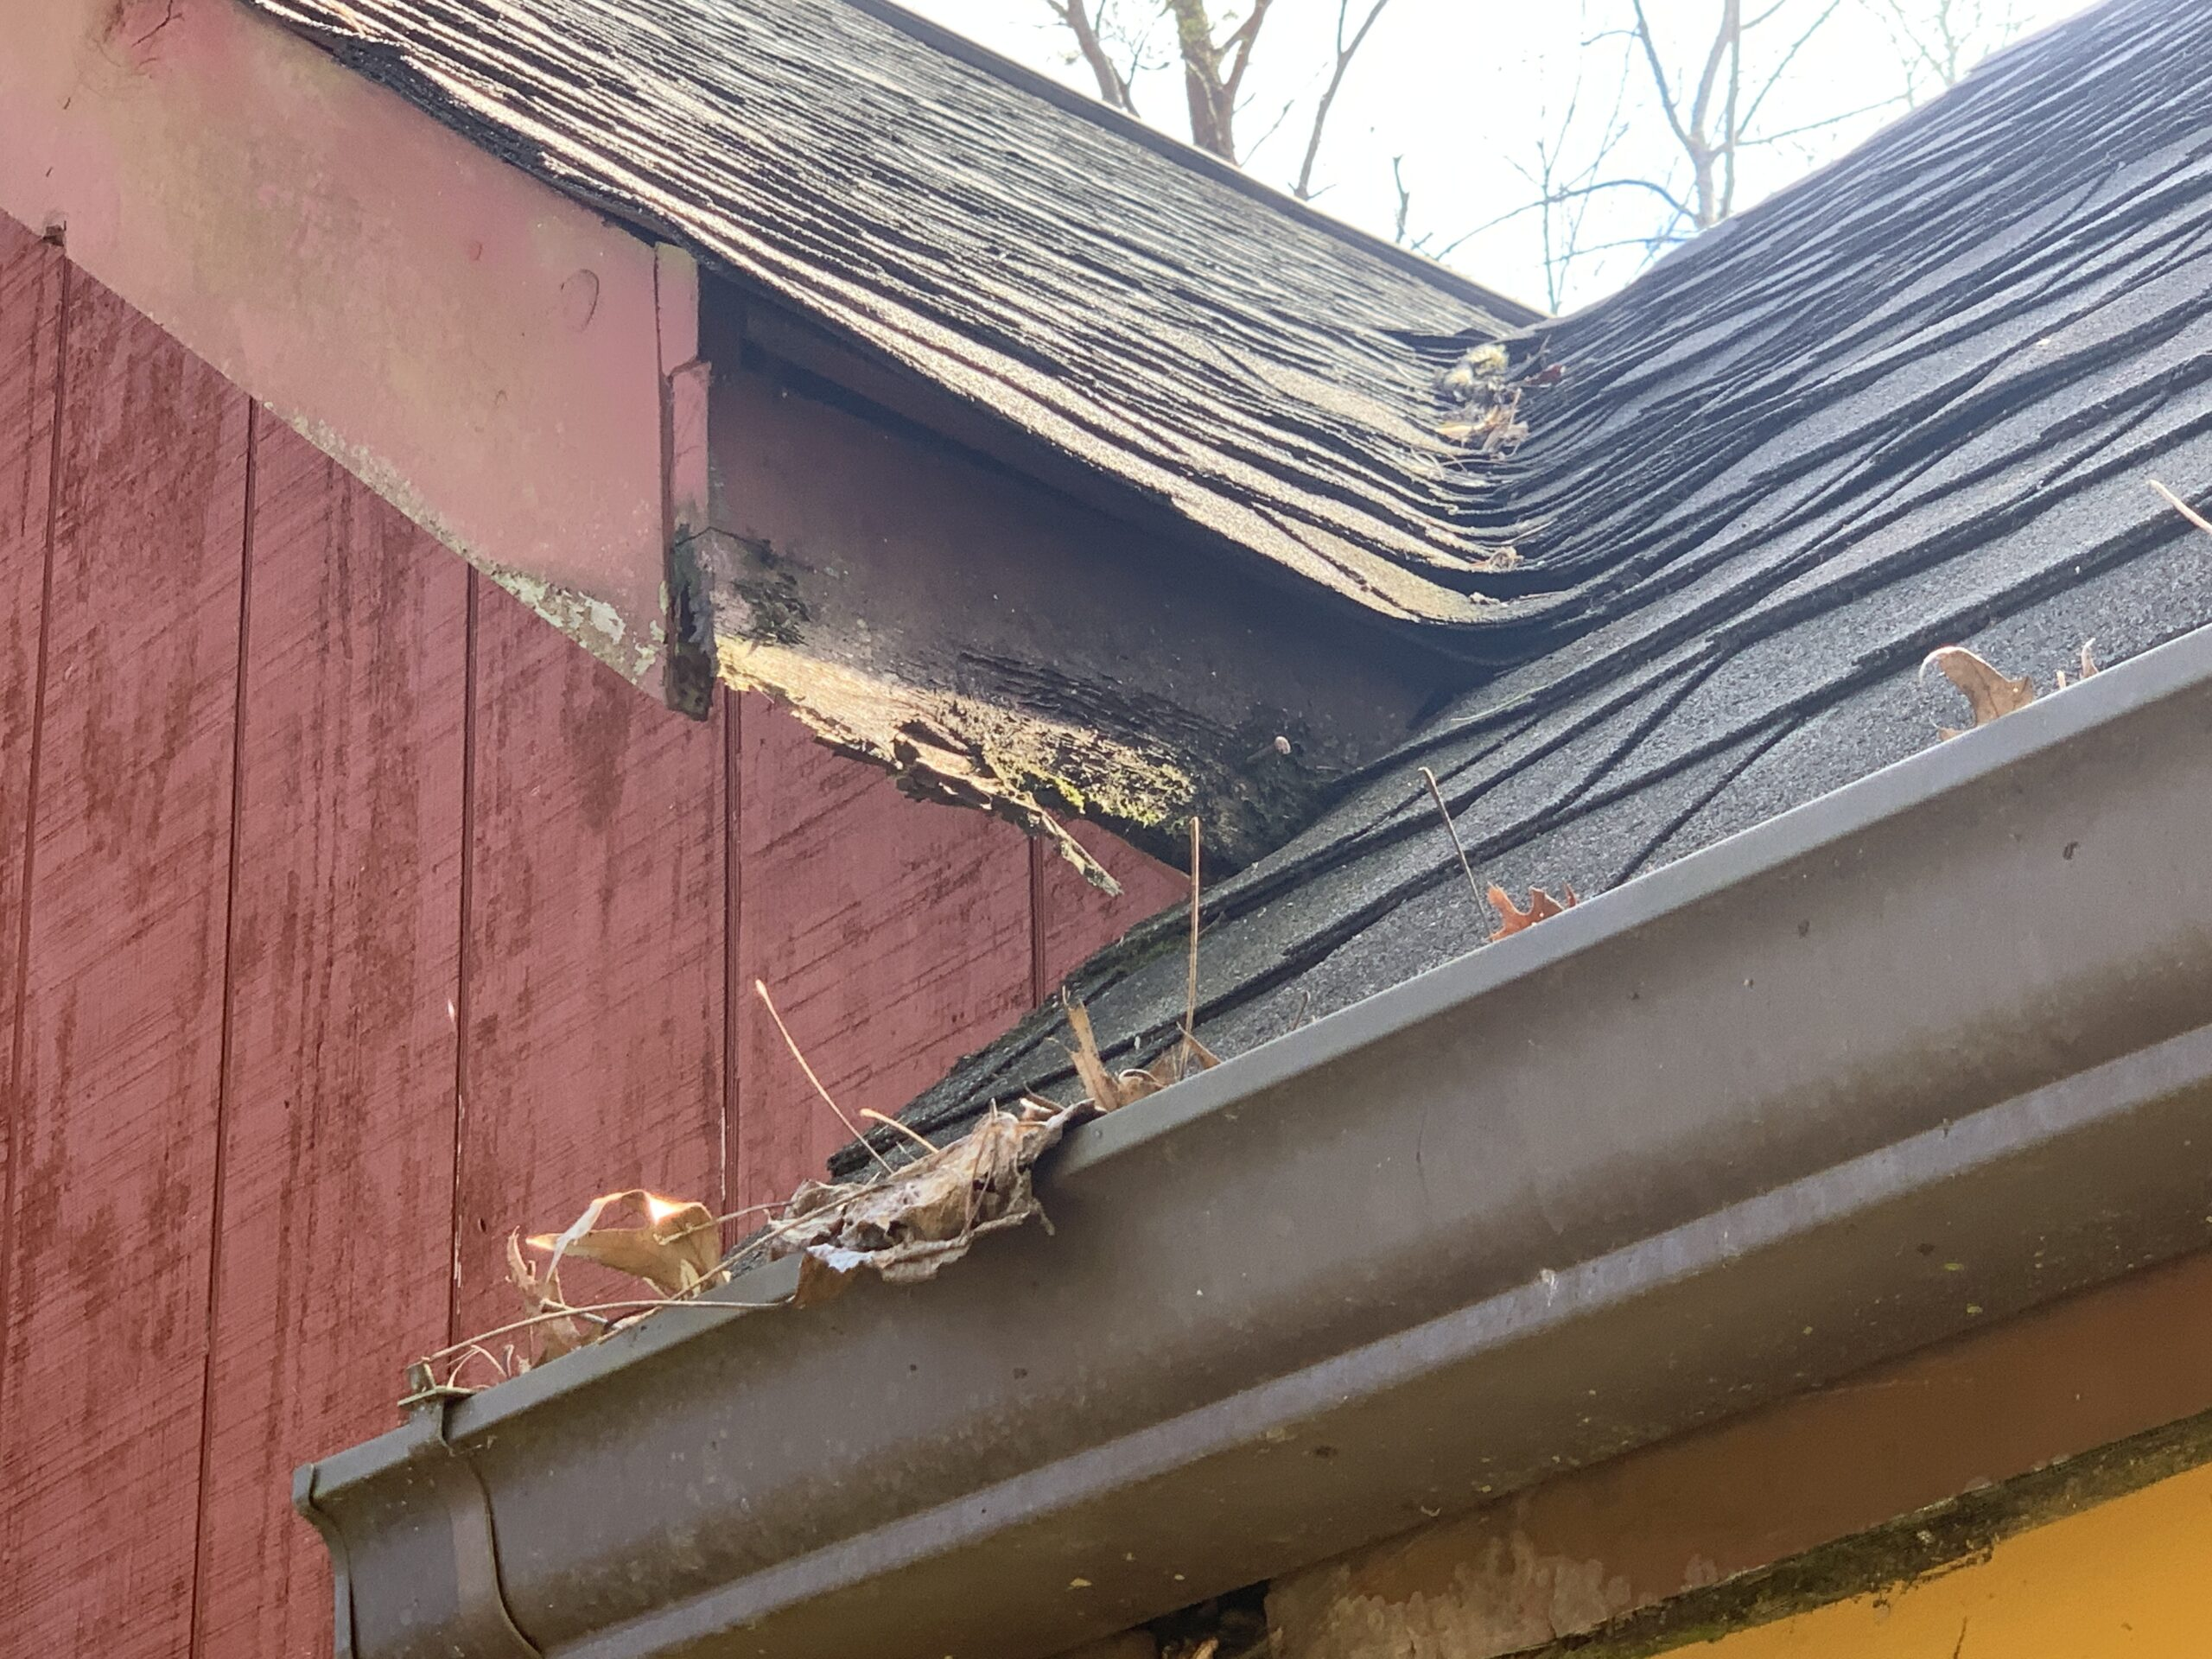 Areas of rotting facia and siding